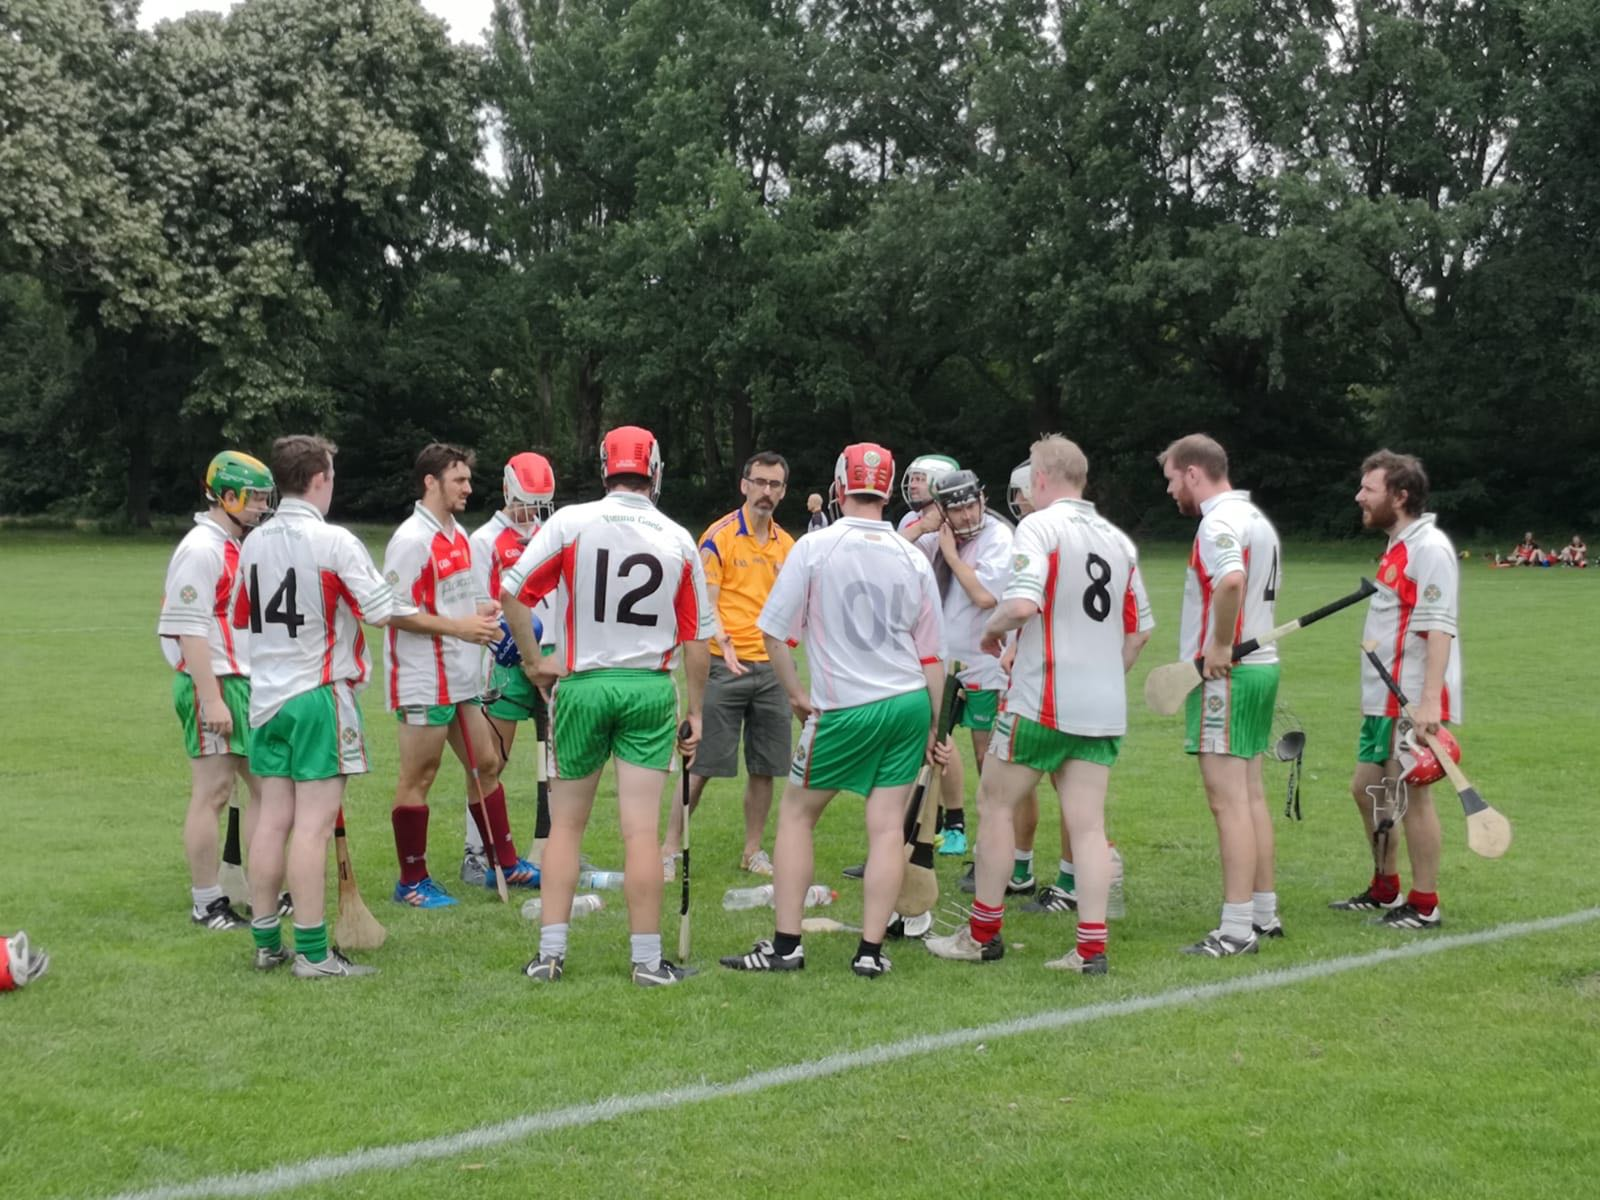 66f8fce4c79 ... GAA in the third place playoff